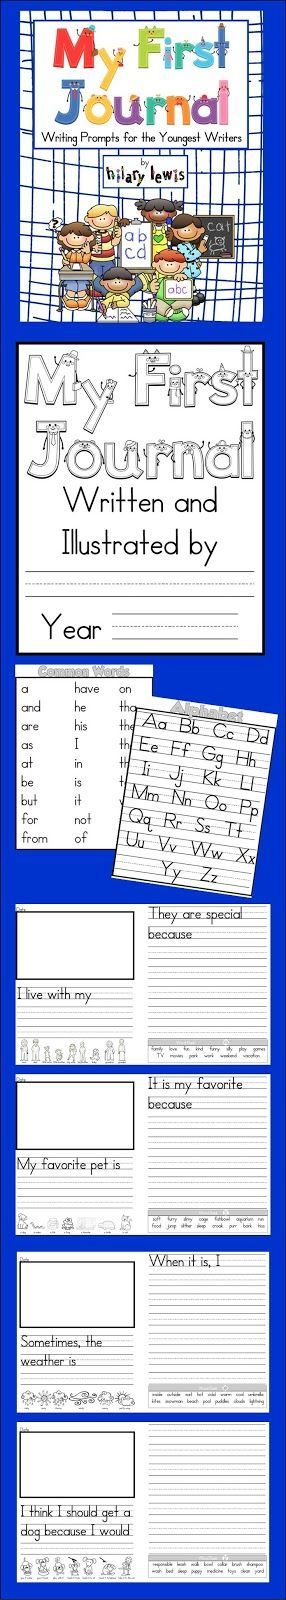 writing prompts for young children to help them with key words and gives them a place to start!